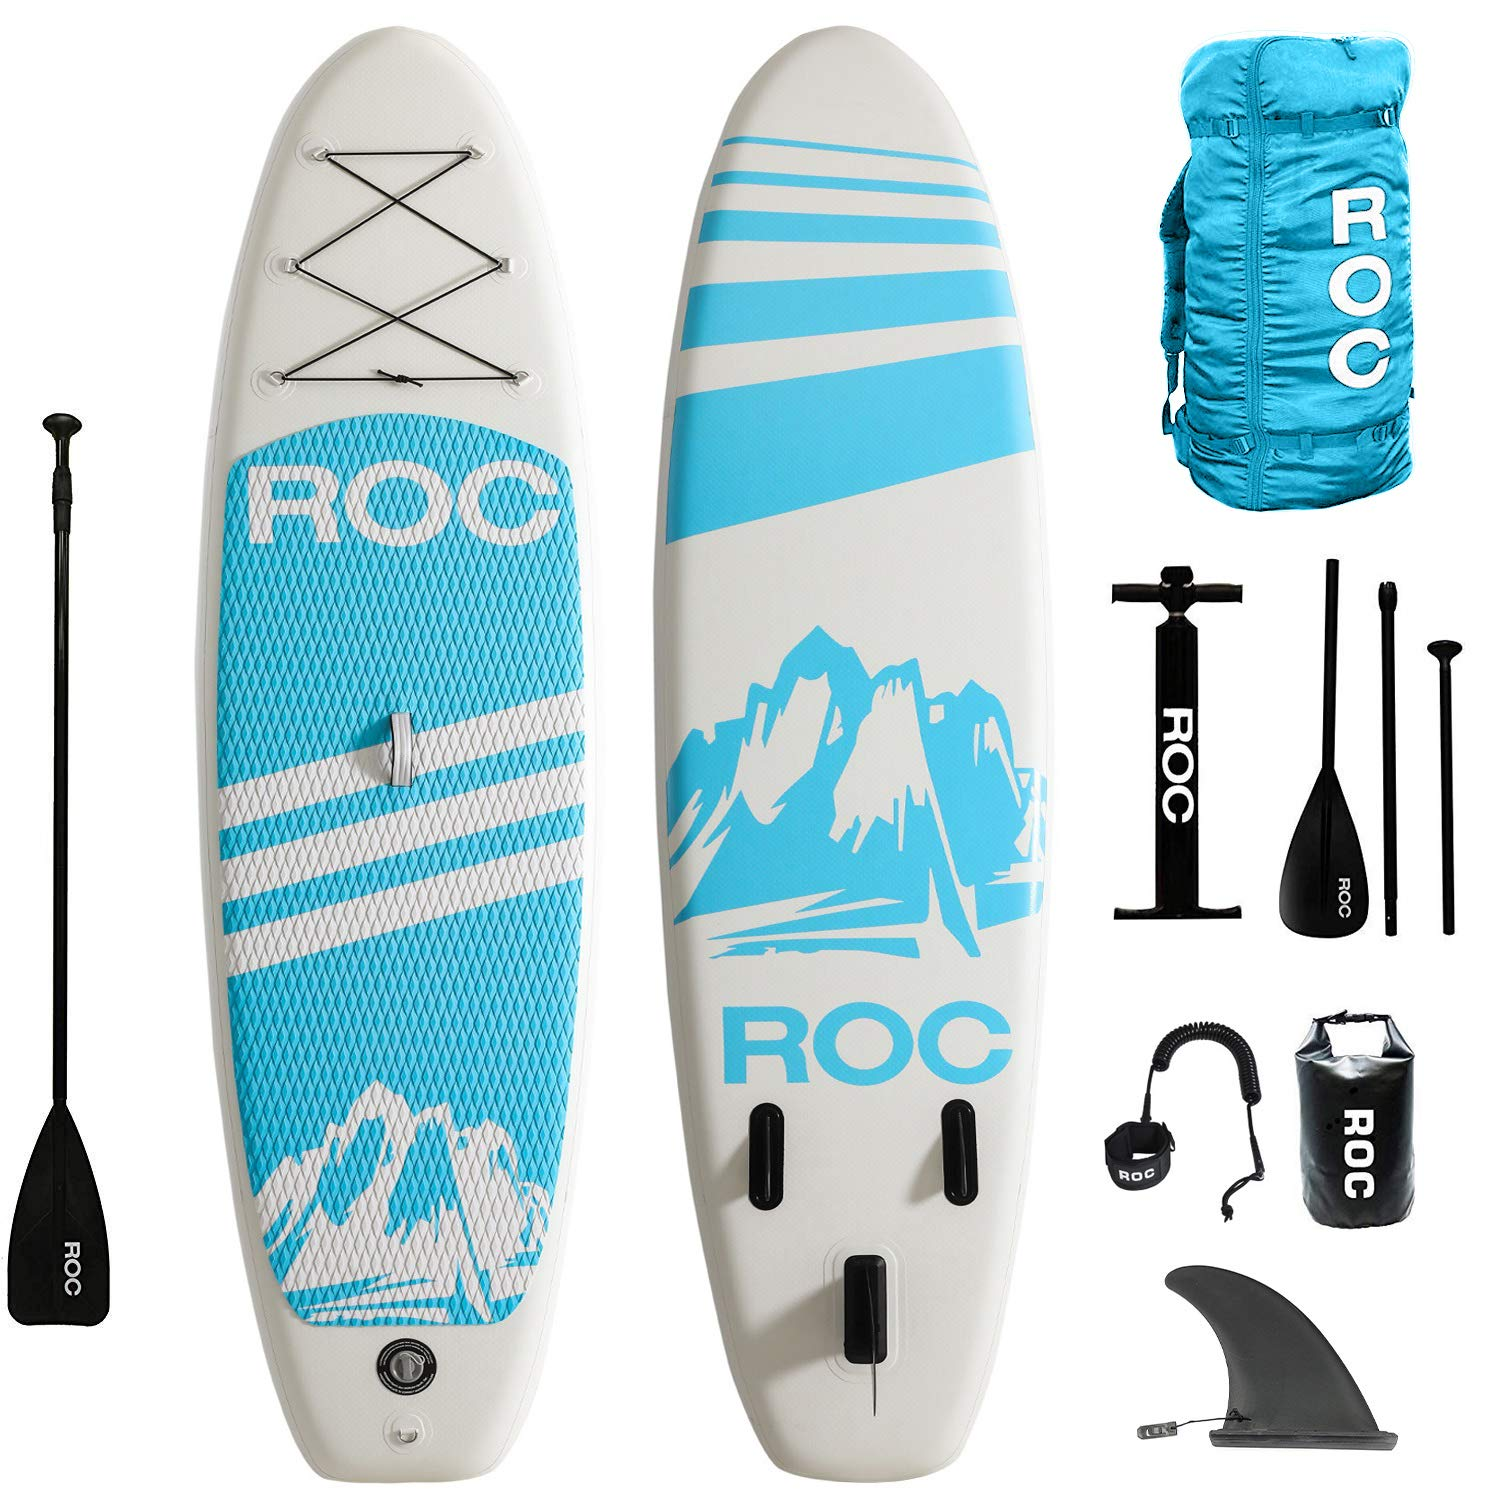 Roc Inflatable Stand Up Paddle Boards W Free Premium SUP Accessories & Backpack { Non-Slip Deck } Bonus Waterproof Bag, Leash, Paddle and Hand Pump !!! Youth & Adult (Blue) by Roc